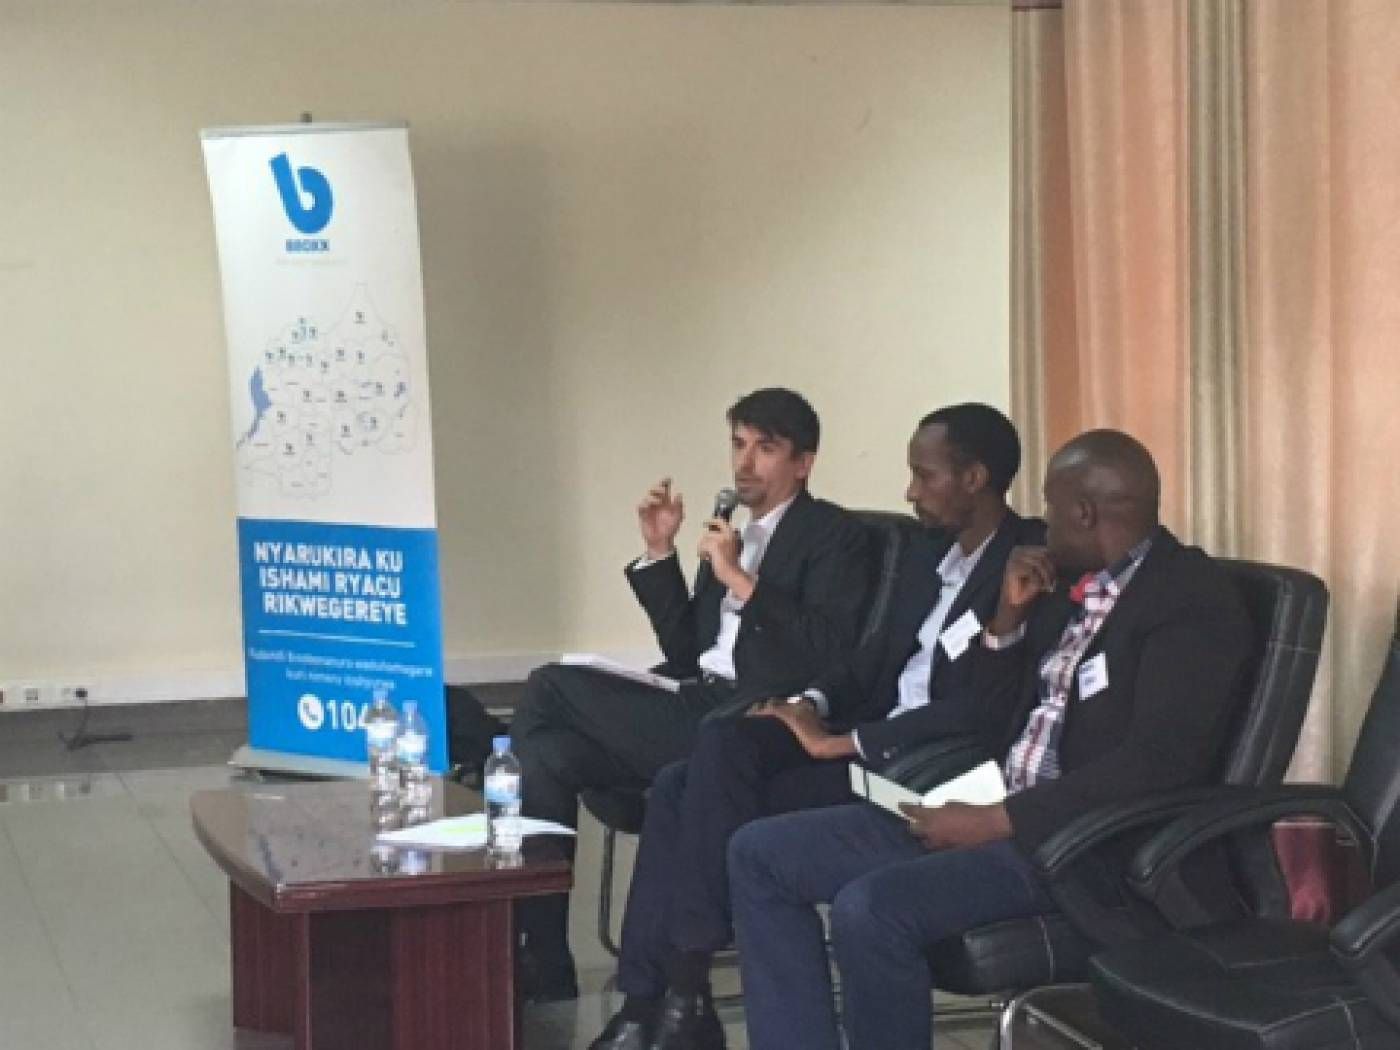 Simon Rolland (EnDev), Justus Mucyo (BBOXX) and Morris Kayitare (EDCL), answer questions from the audience.